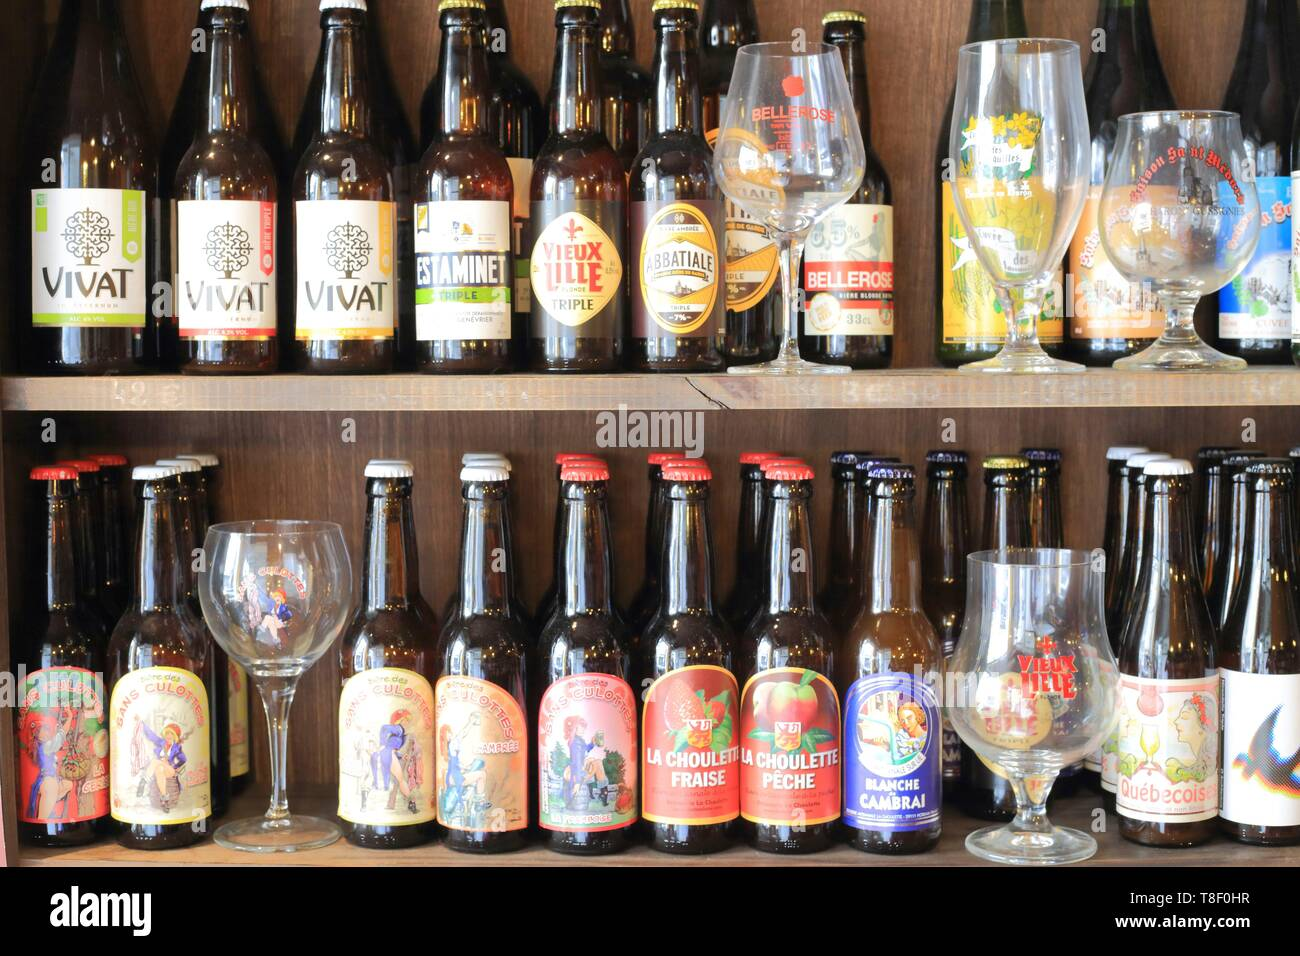 France, Nord, Lille, Vieux Lille, L'Estaminette, regional produce store that belongs to the neighboring restaurant L'Estaminet, it offers about 50 local beers - Stock Image